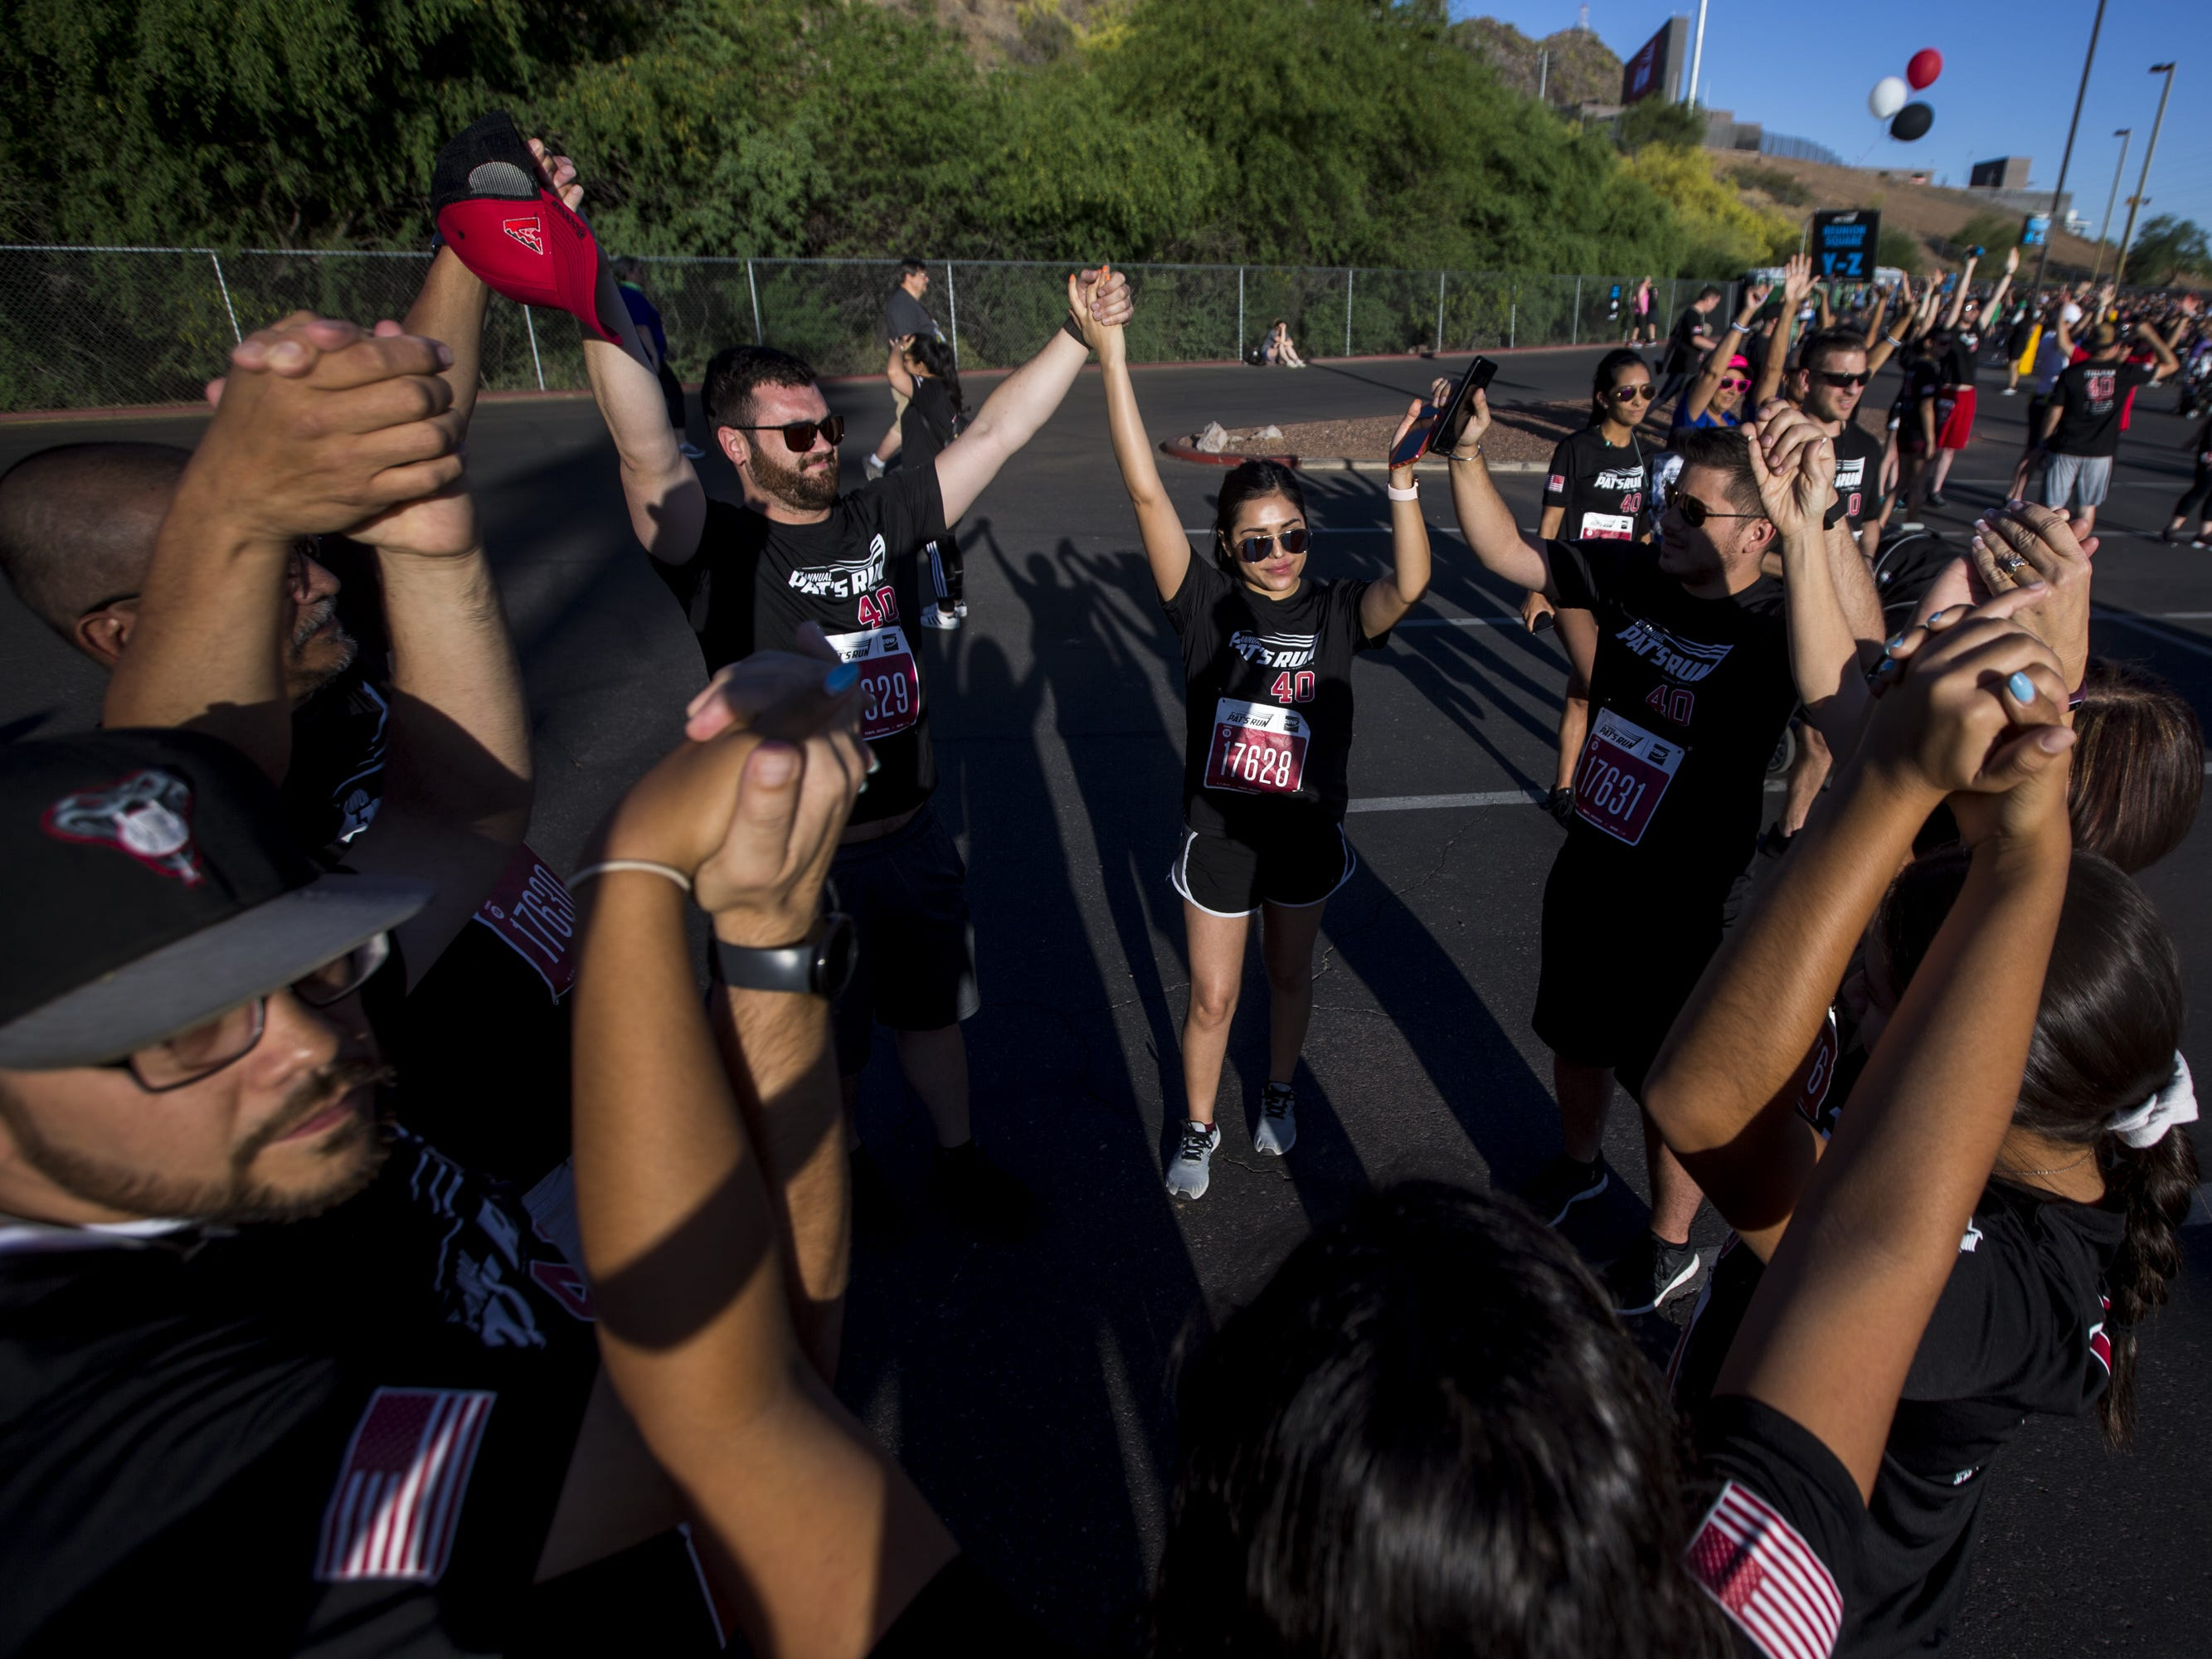 Participants raise their arms after a moment of silence before the 15th Annual Pat's Run on Saturday, April 27, 2019, in Tempe, Ariz.